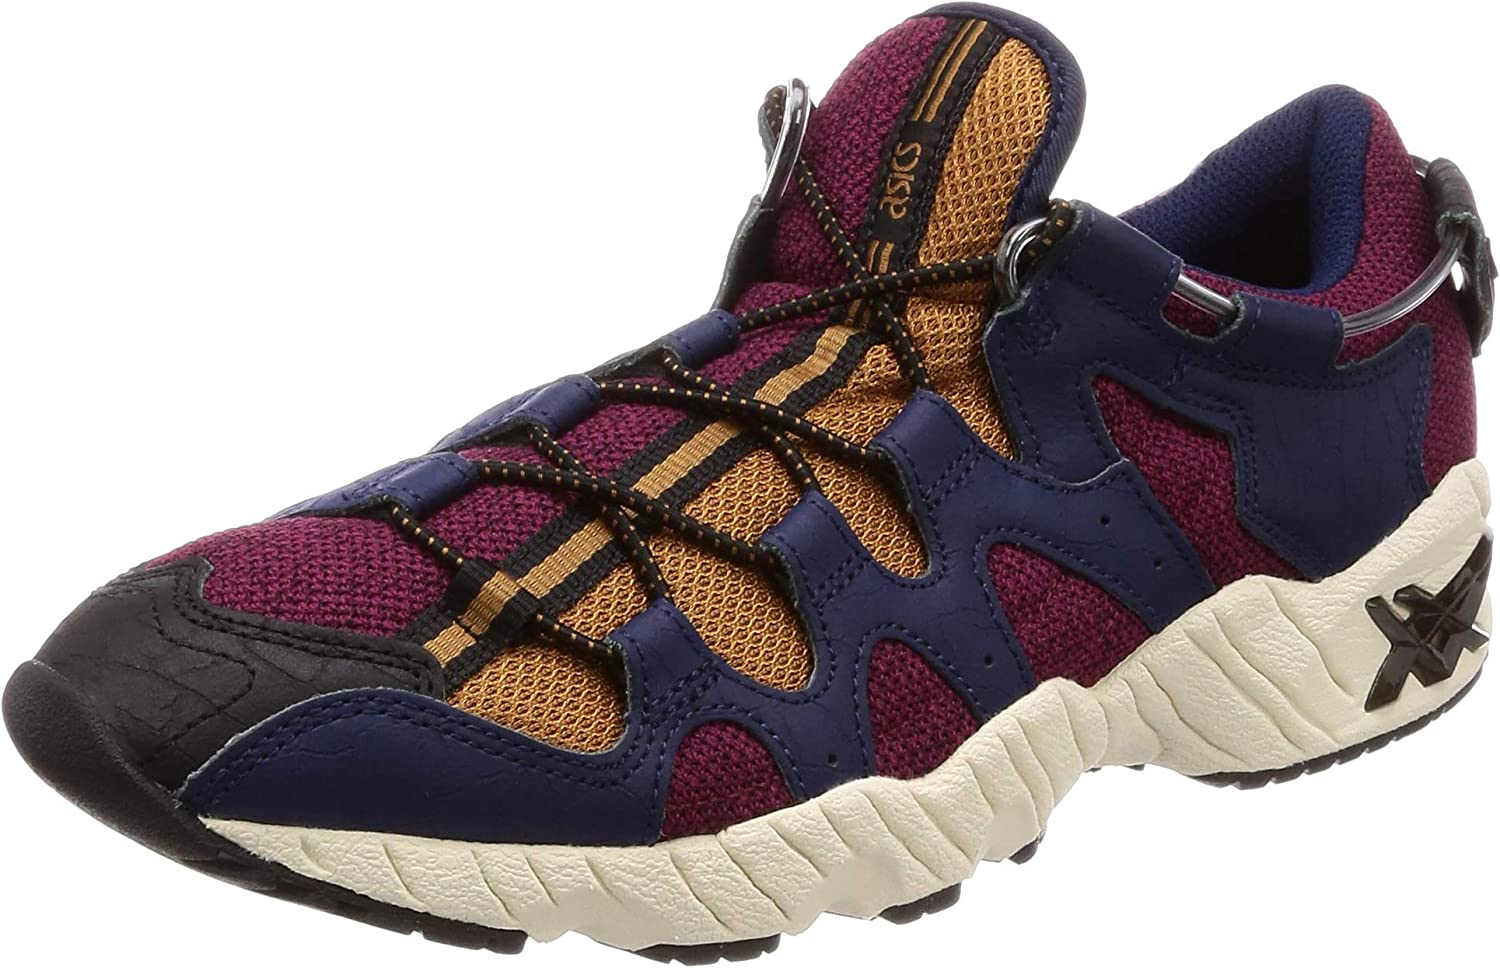 ASICS Men's Trainers Red Navy